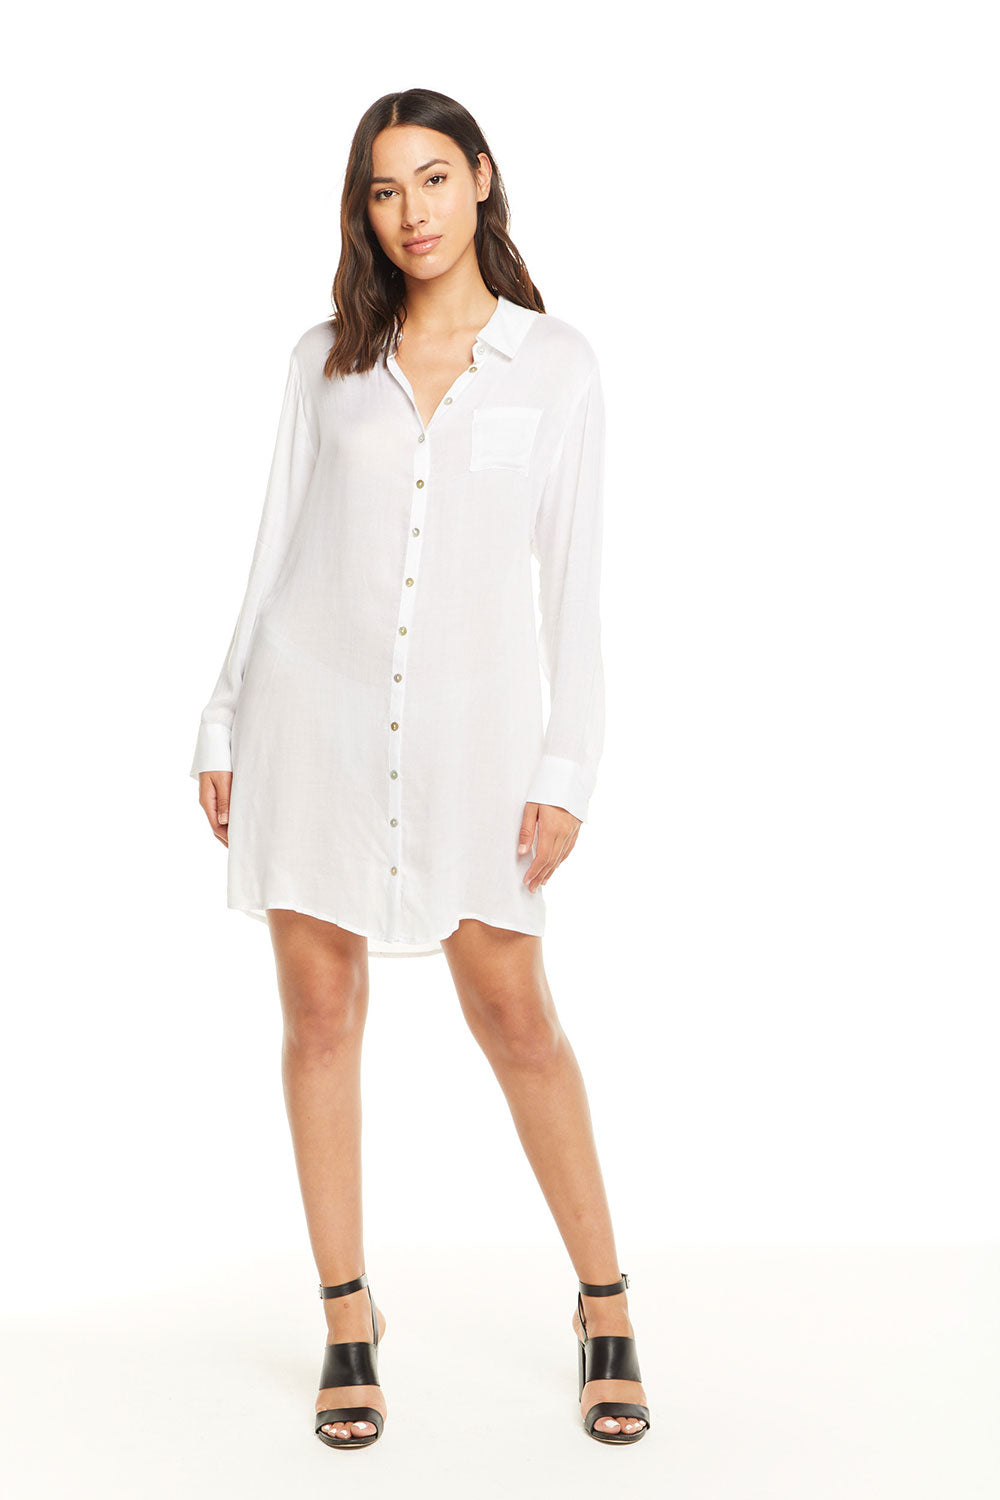 Heirloom Gauze L/S Button Down Shirt Dress WOMENS - chaserbrand